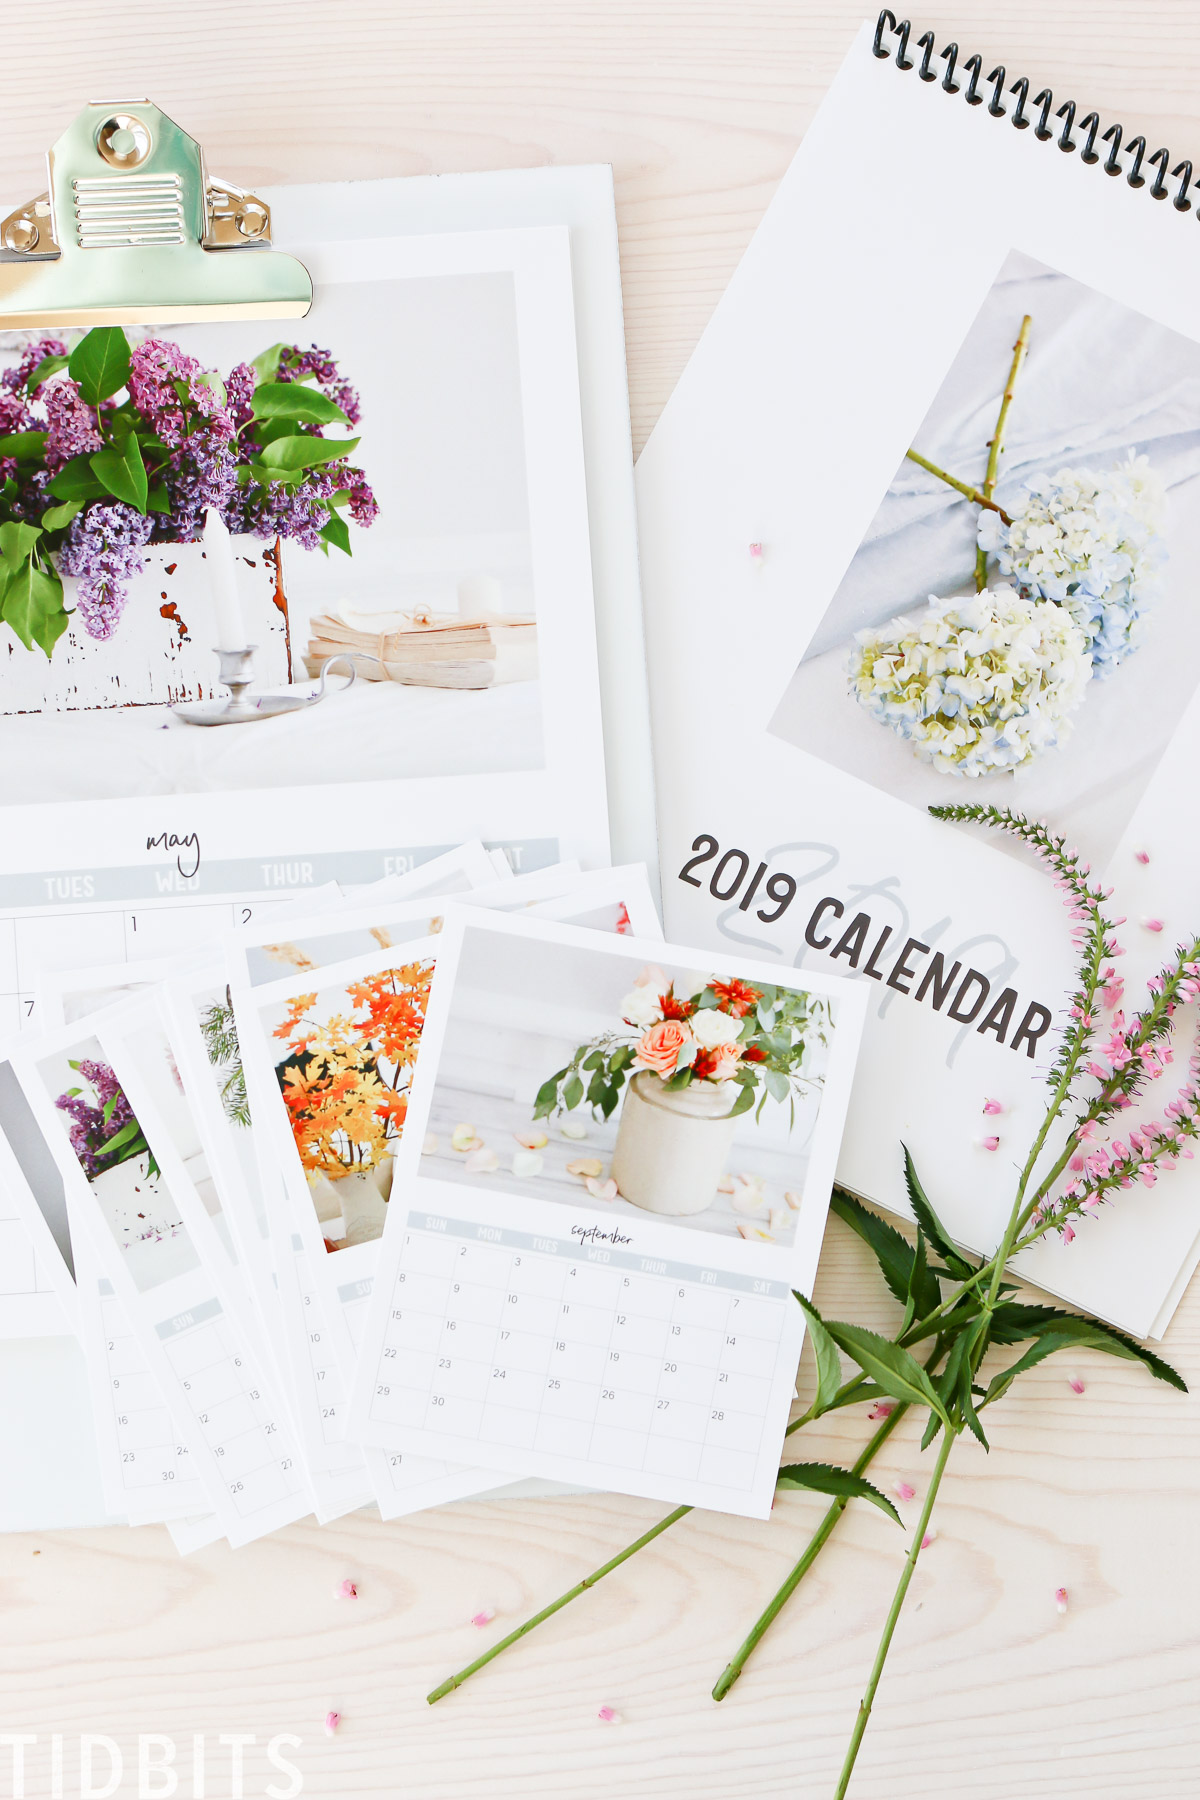 graphic relating to Floral Printable called 2019 TIDBITS Floral Calendar Absolutely free Printable - Tidbits